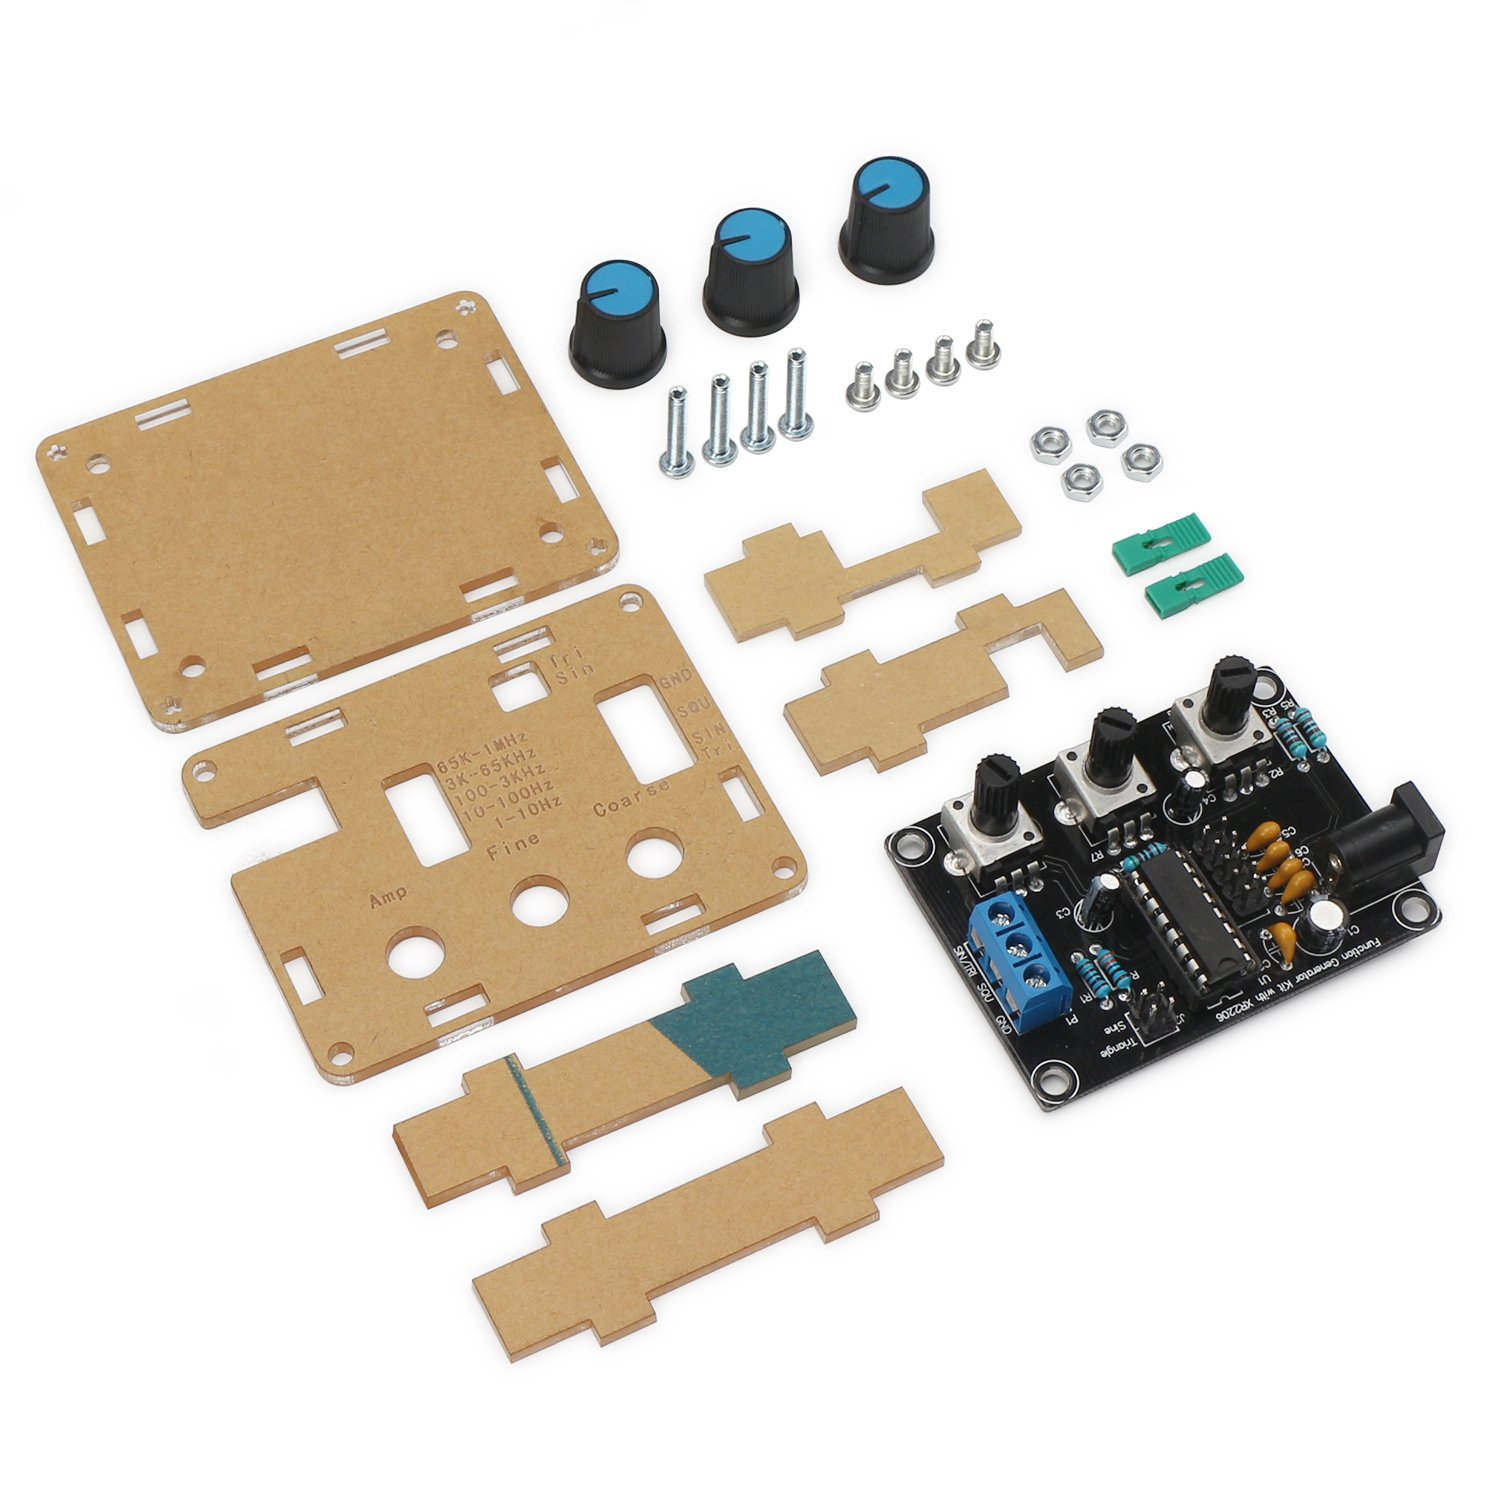 Drok Xr2206 5 Digit High Precision Signal Generator Dc 9 12v 1hz To Tri Waveform 1mhz Function Kit Square Triangle Sine Wave Module Board With